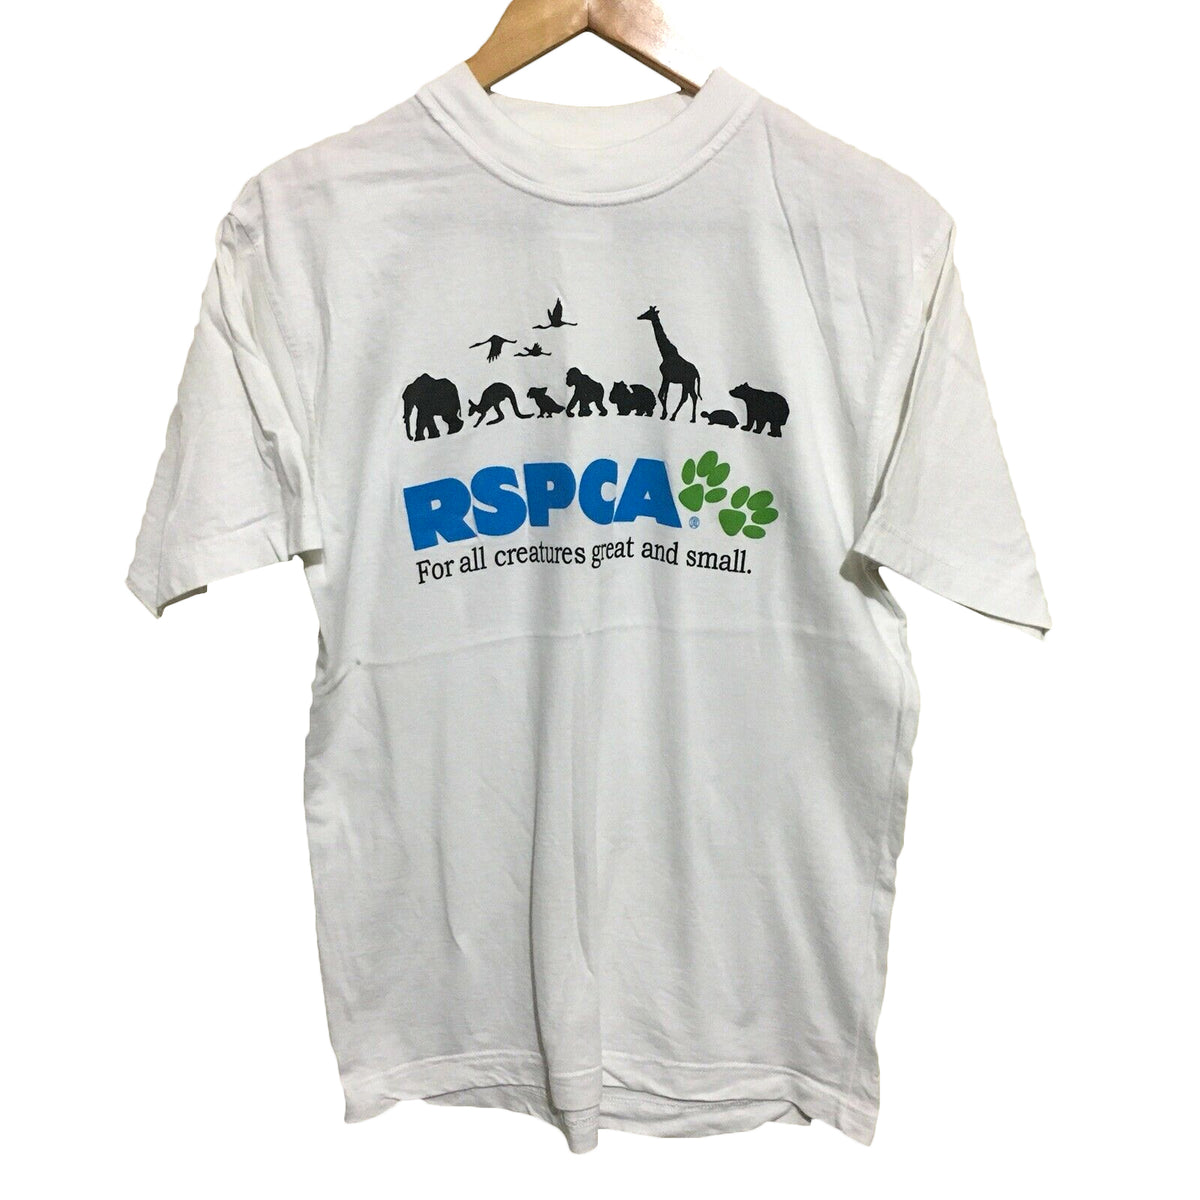 RSPCA For All Creatures Great And Small Vintage T-Shirt Mens Small